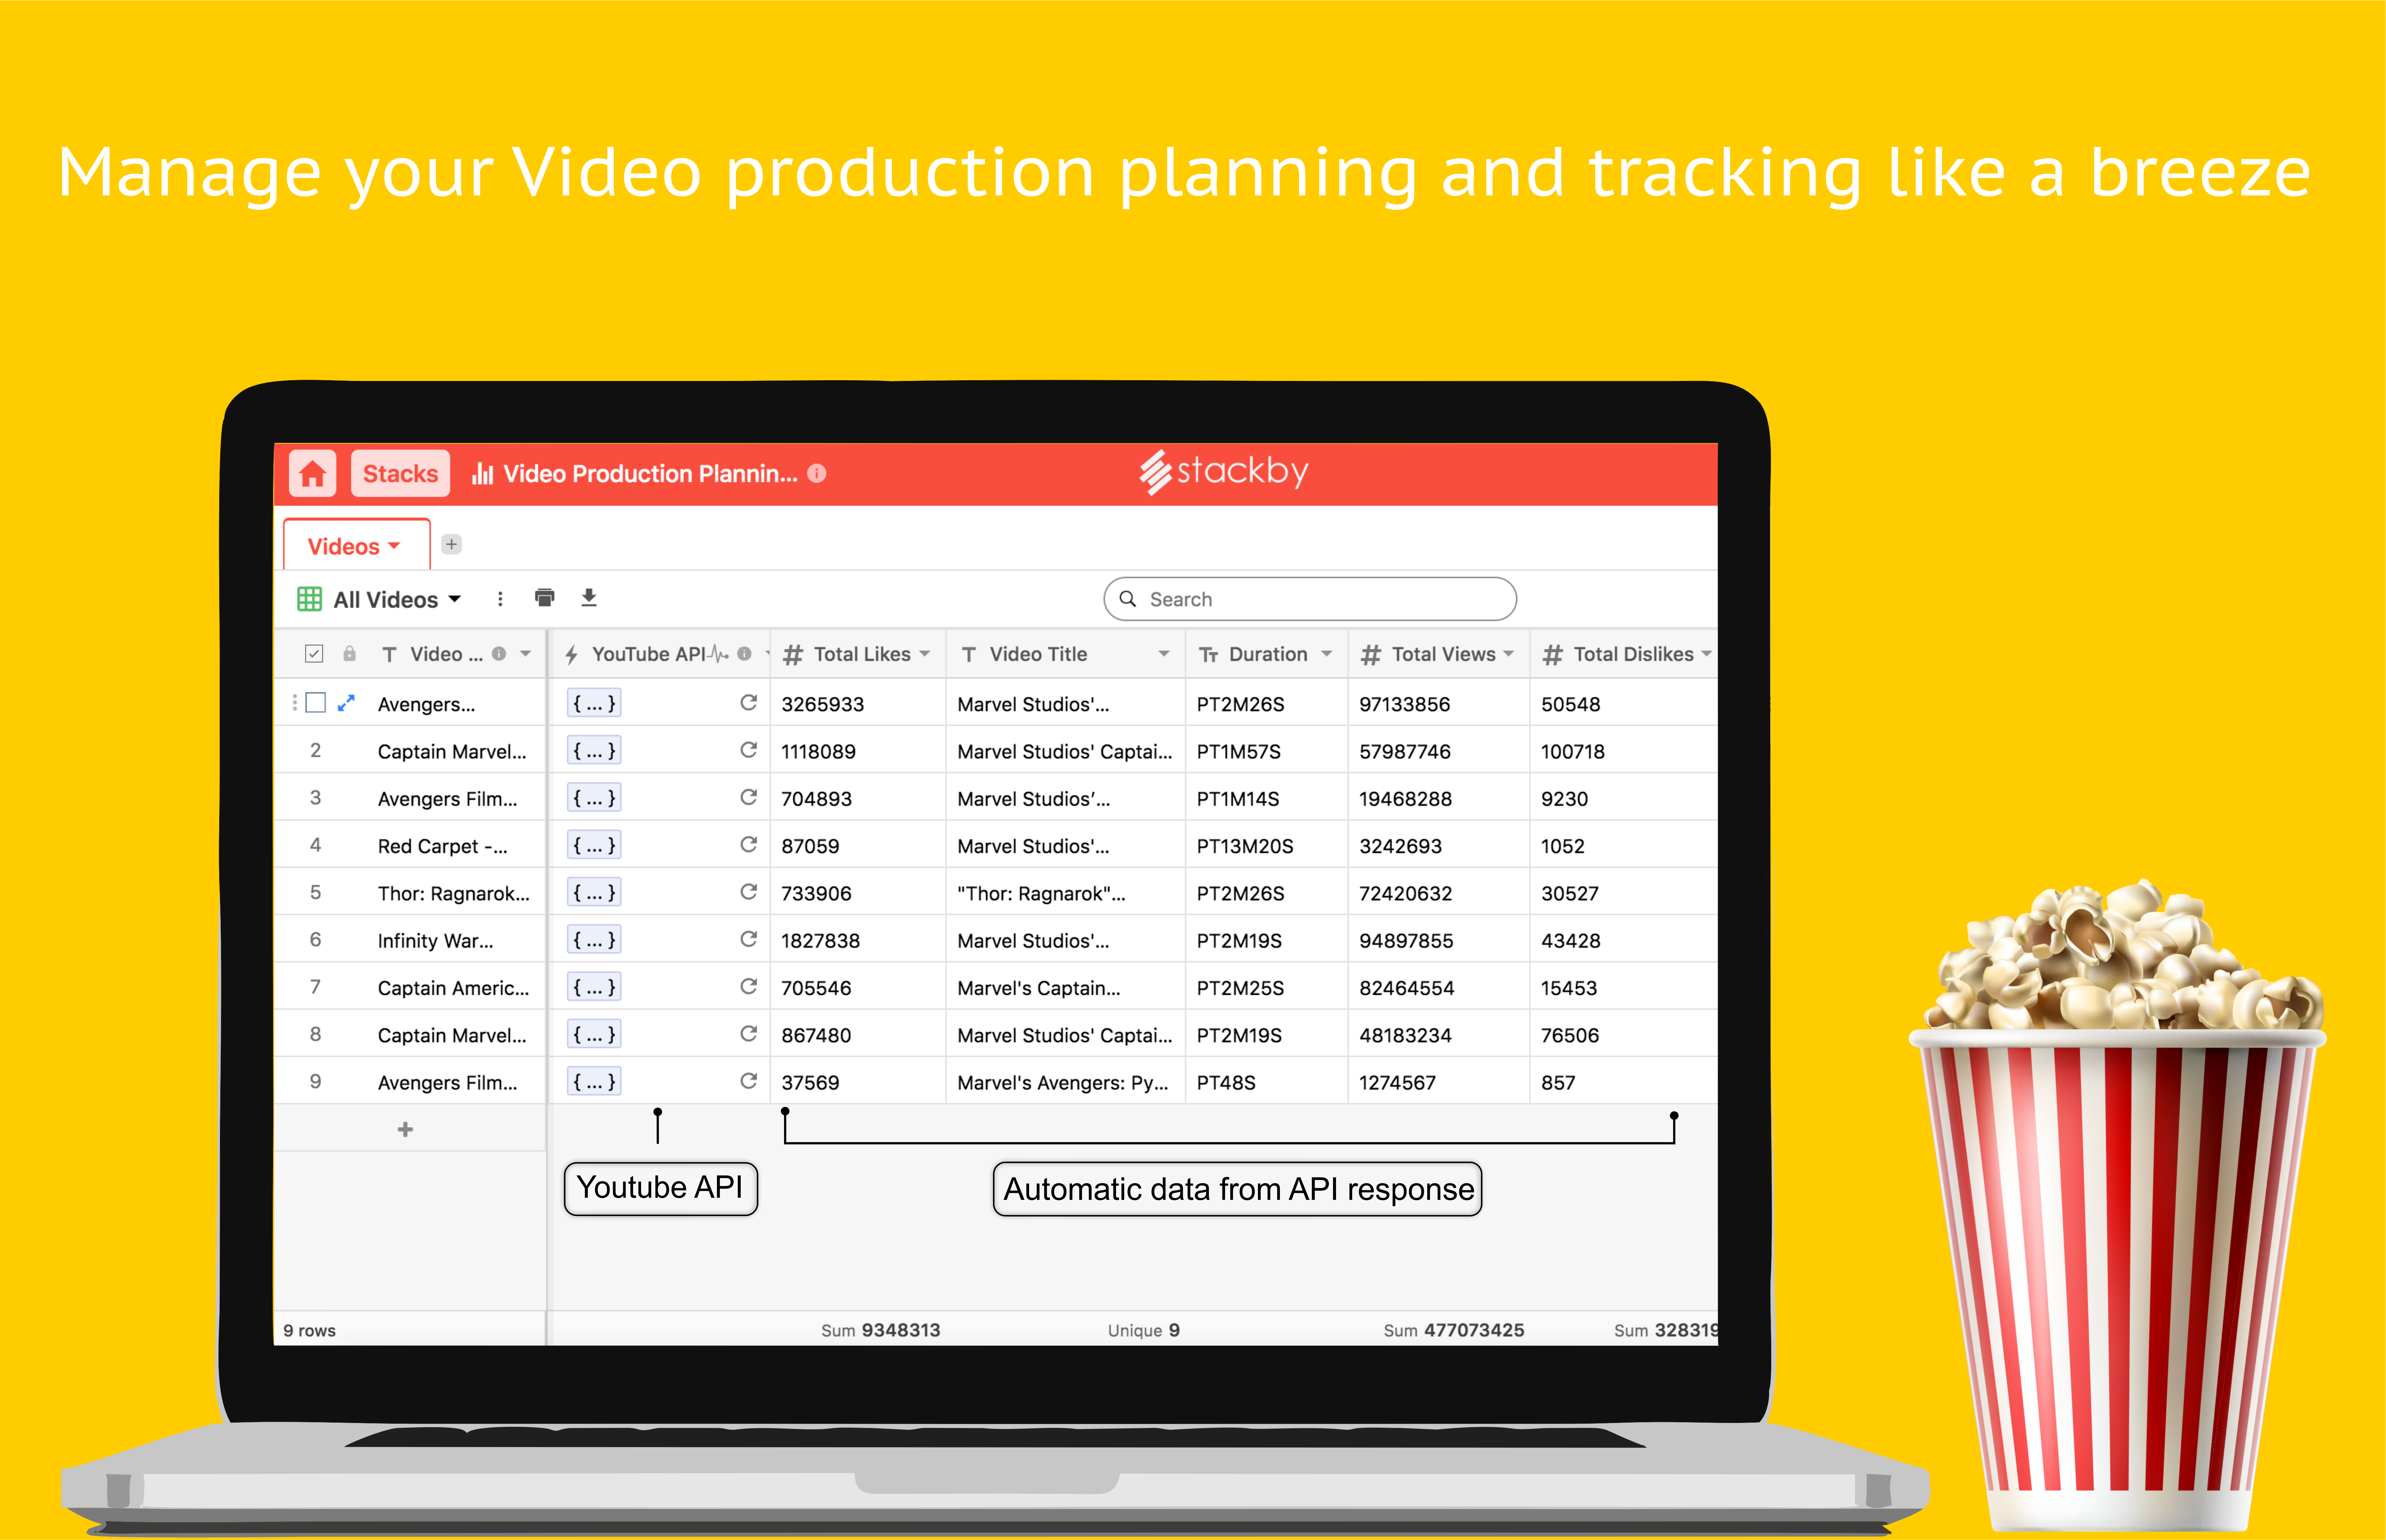 Manage your Video Production Planning and Tracking like a Breeze